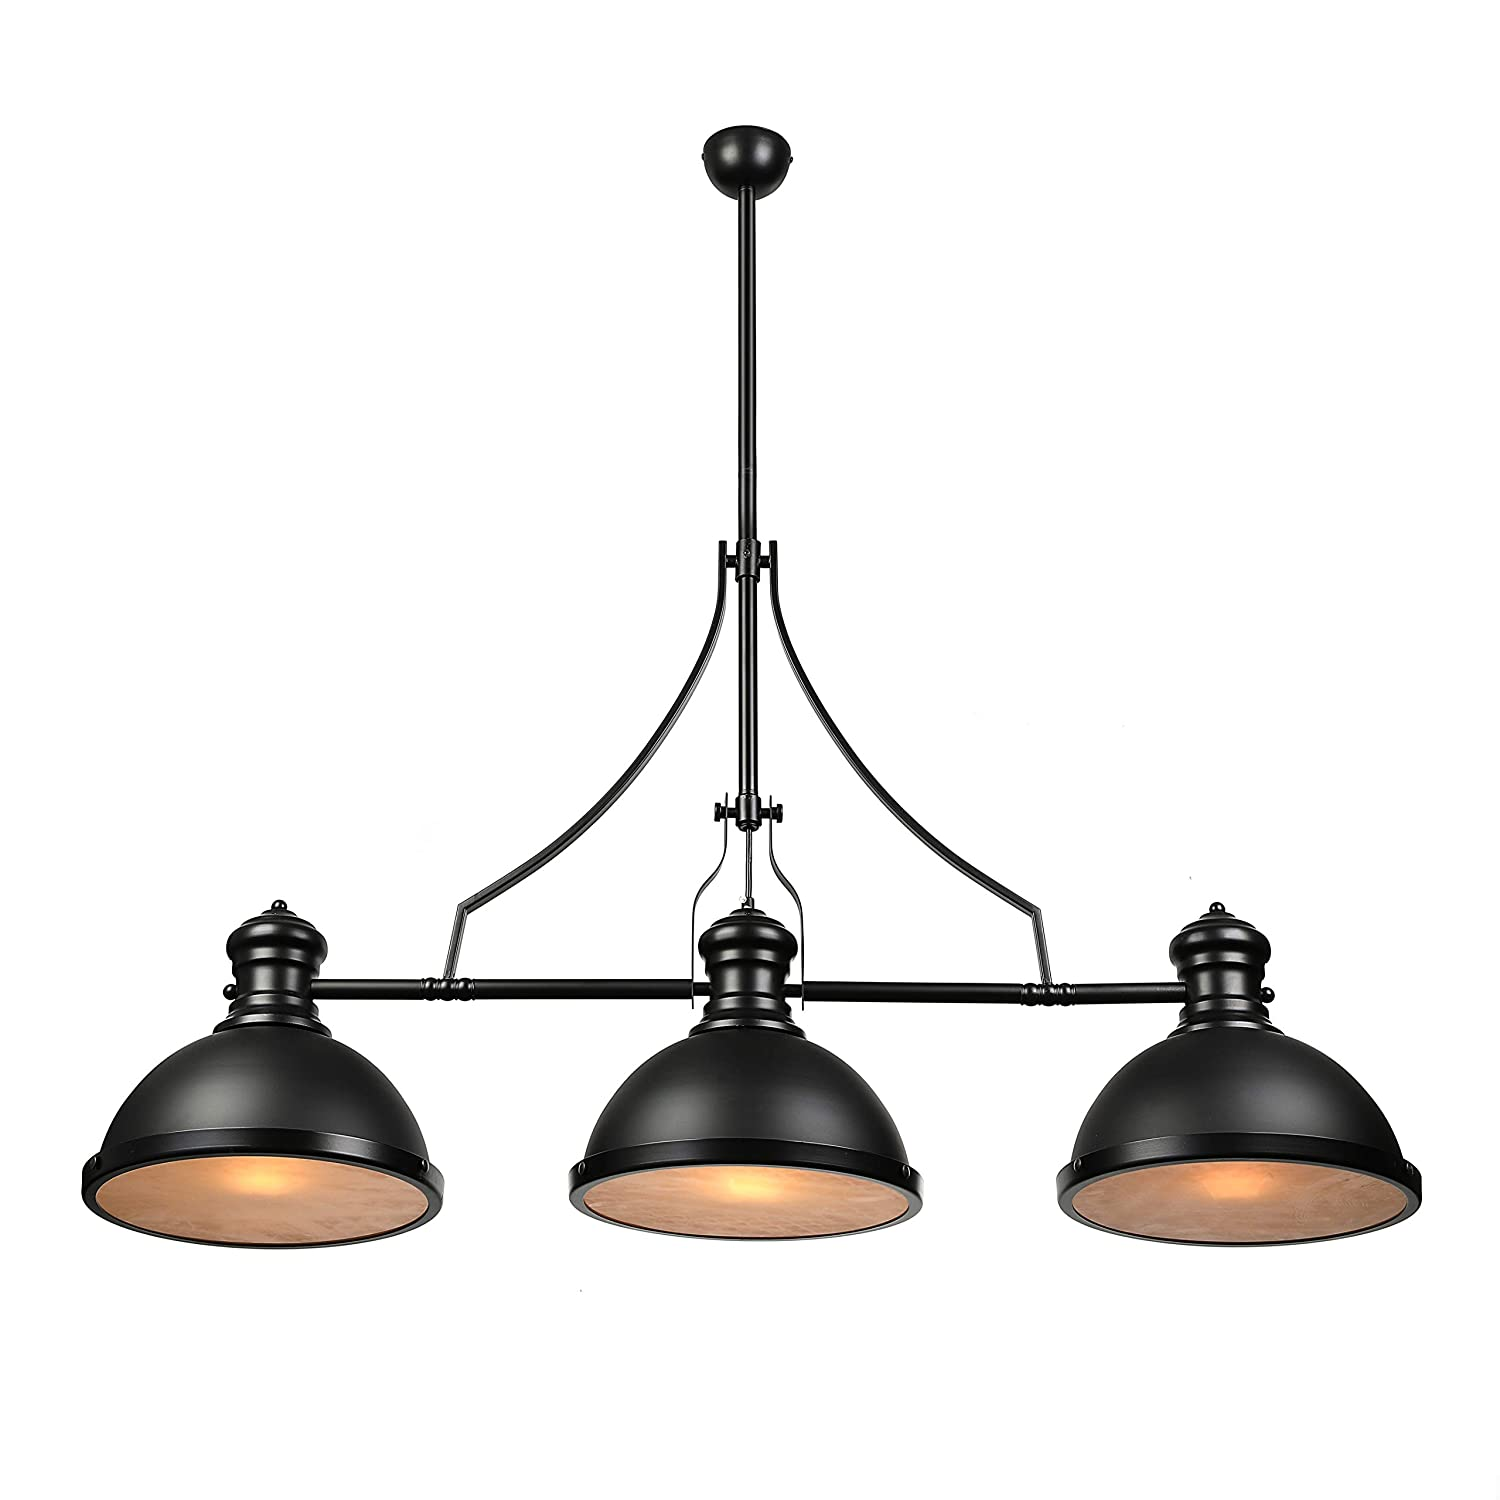 Baycheer industrial retro vintage style three light pool table light linear island chandelier pendant light lampe with 35 43 inch length chain in black